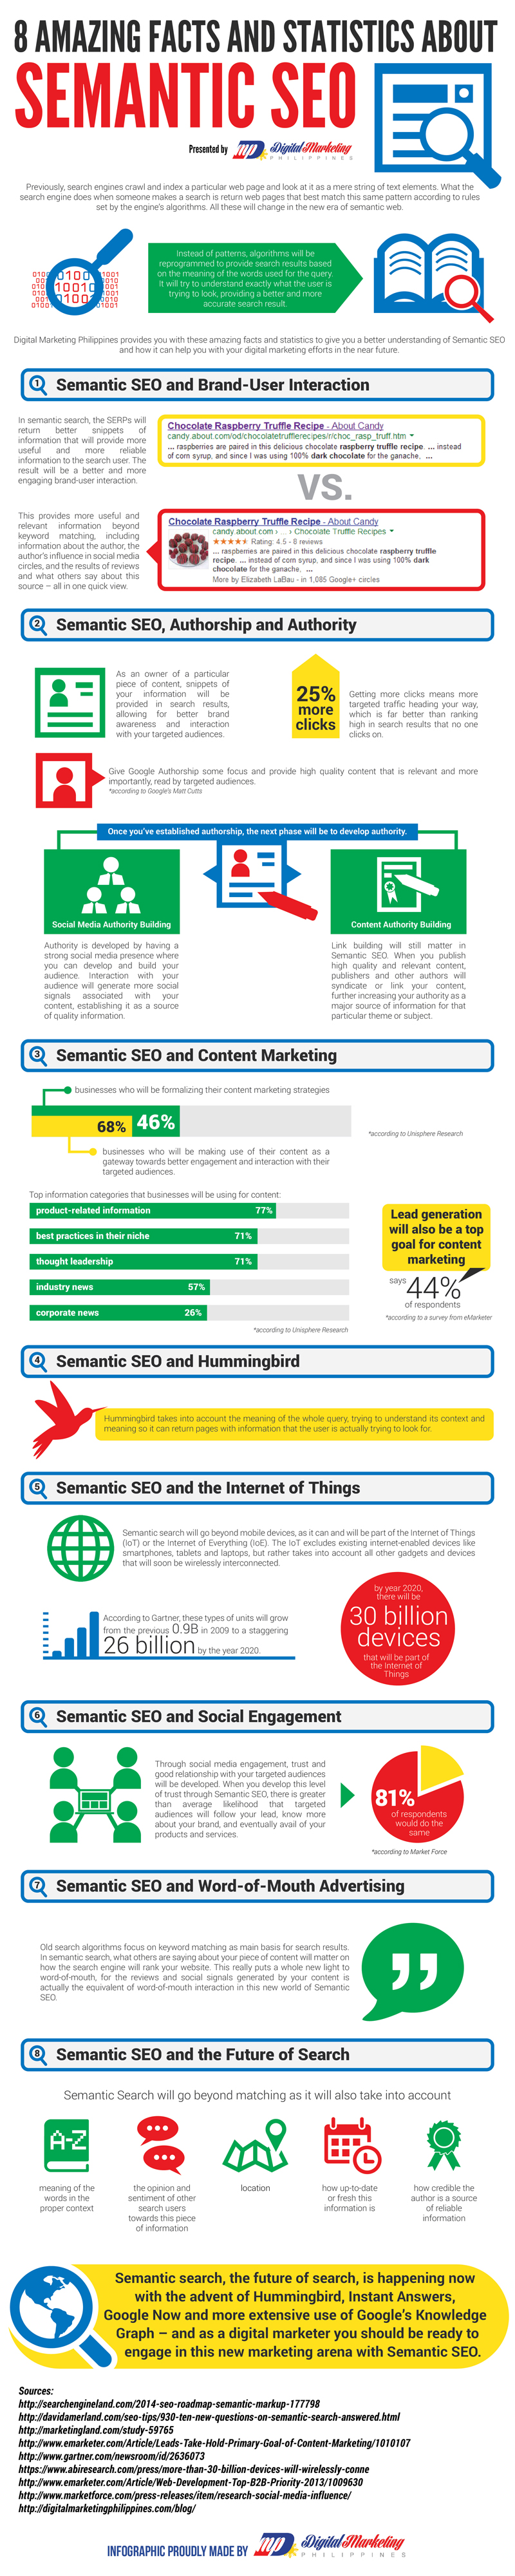 8 Amazing Facts and Statistics about Semantic SEO